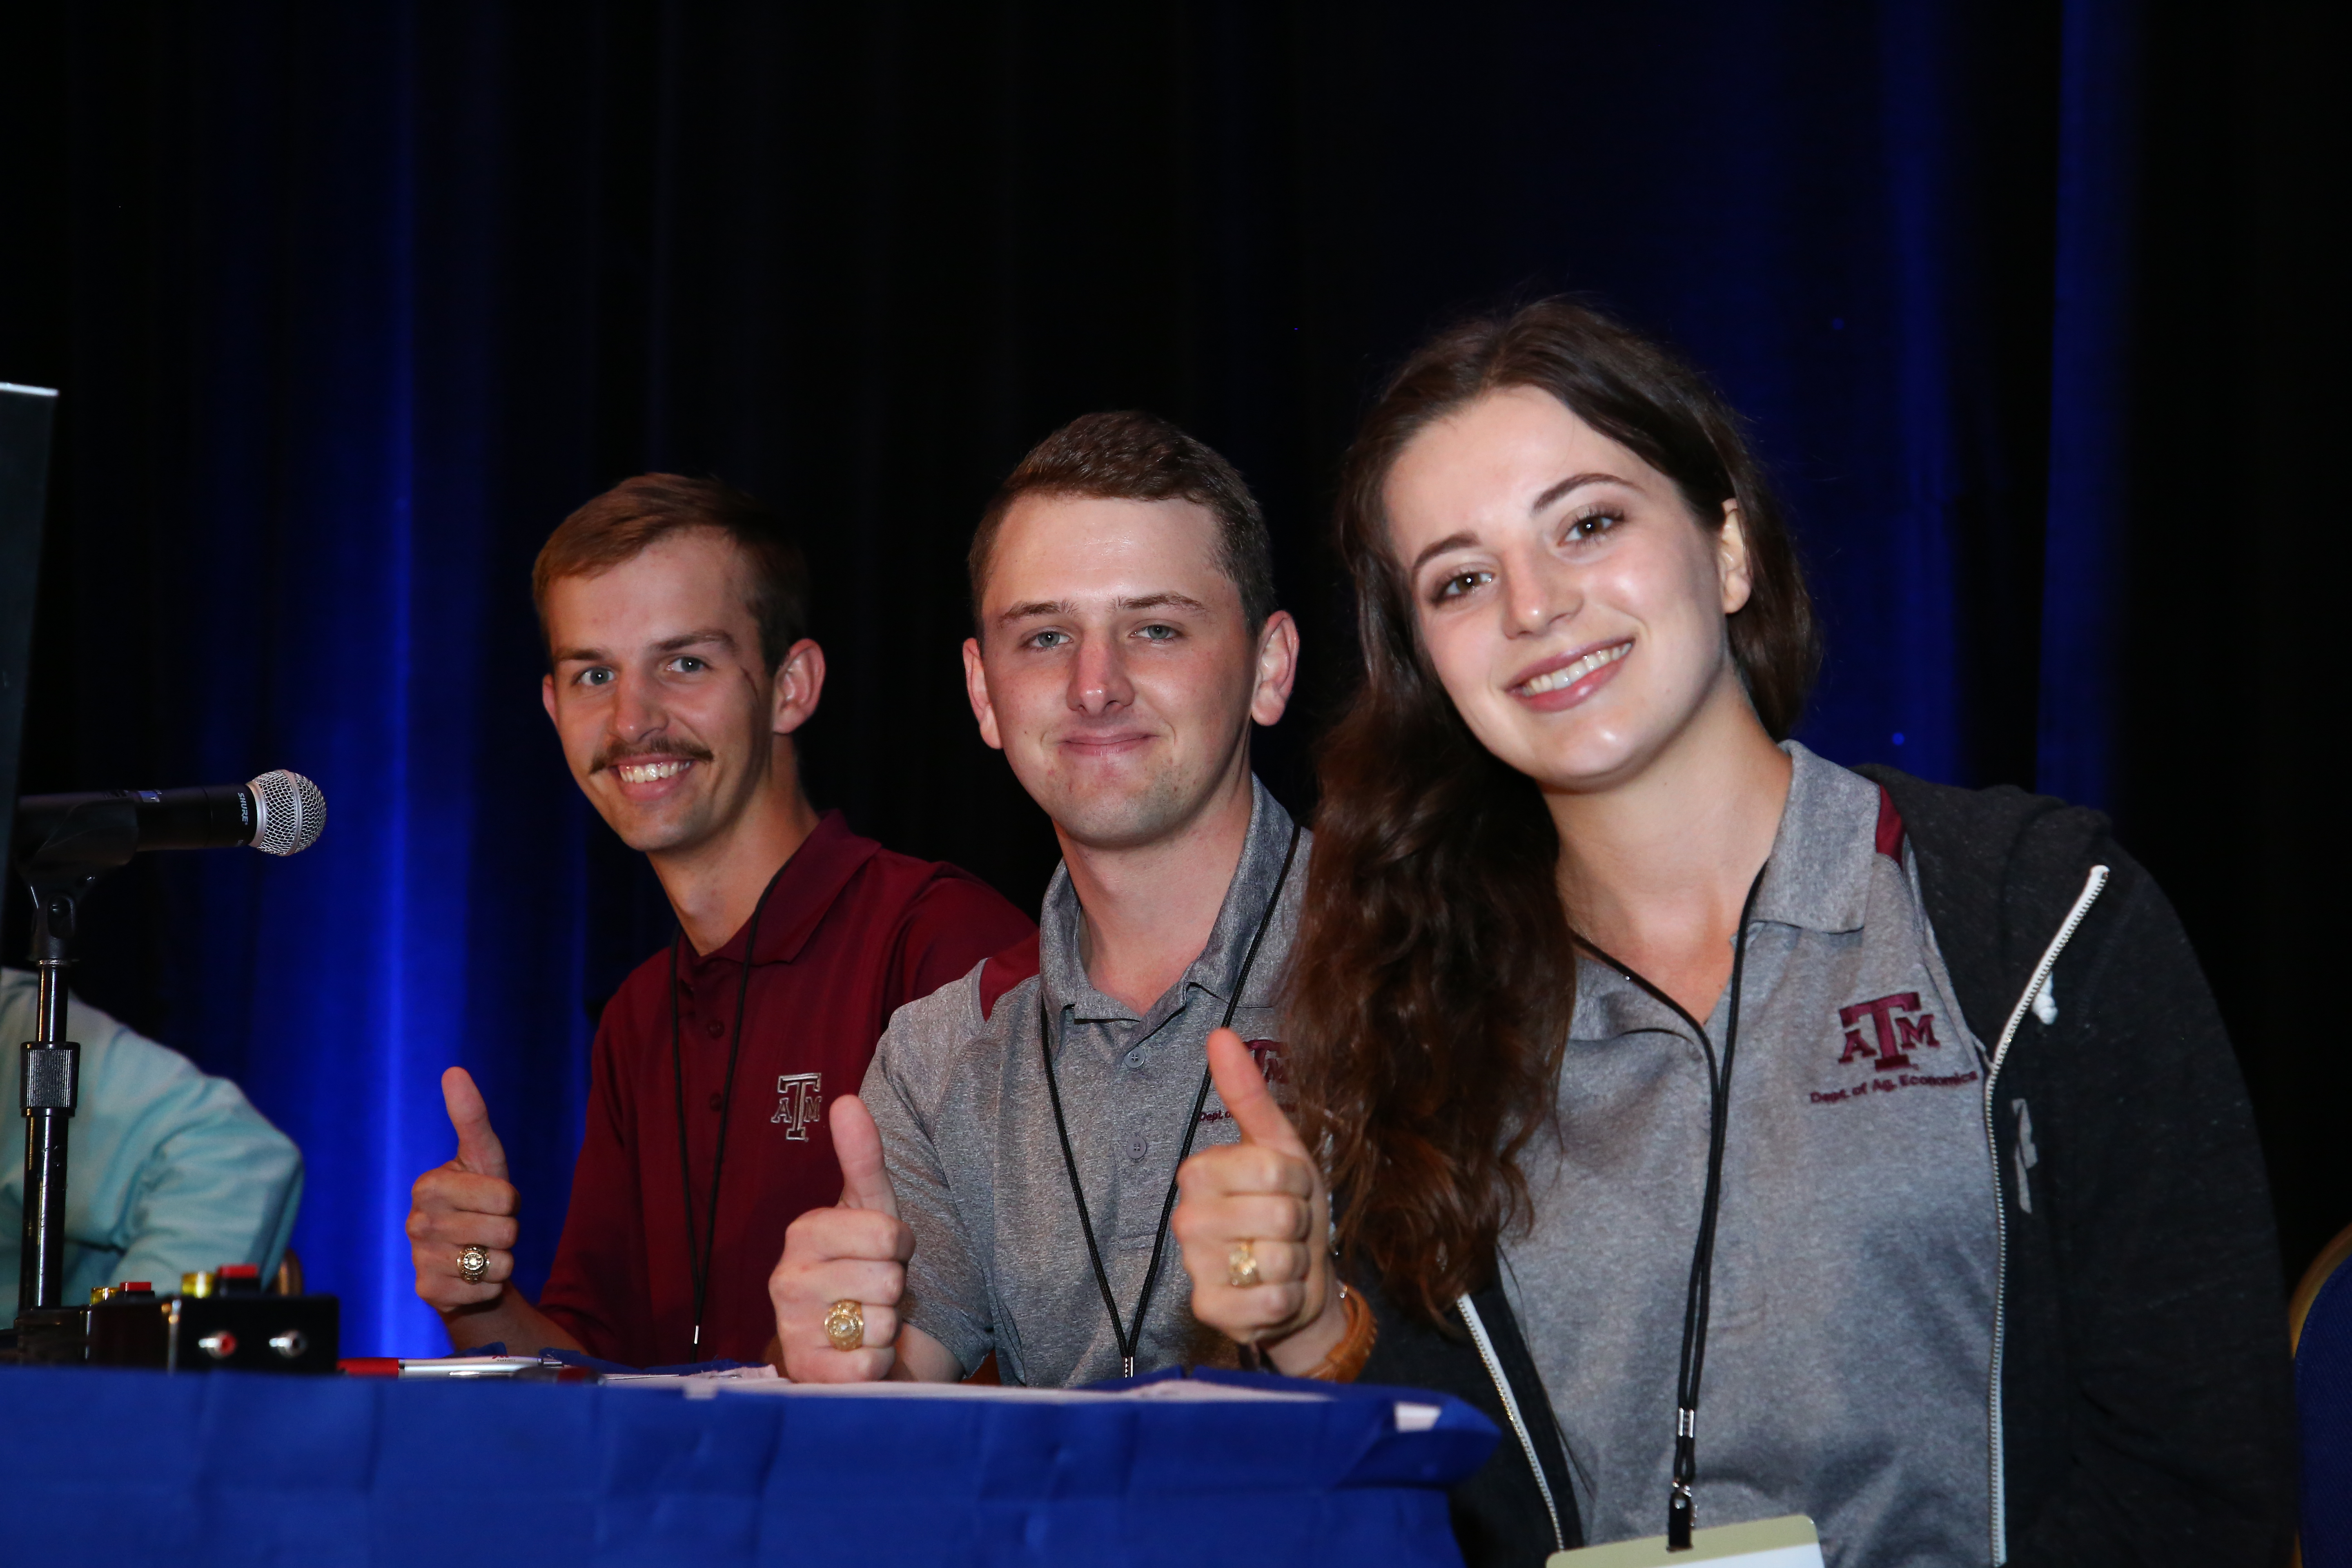 2018 AAEA Annual Awards Photo Gallery | Agricultural & Applied